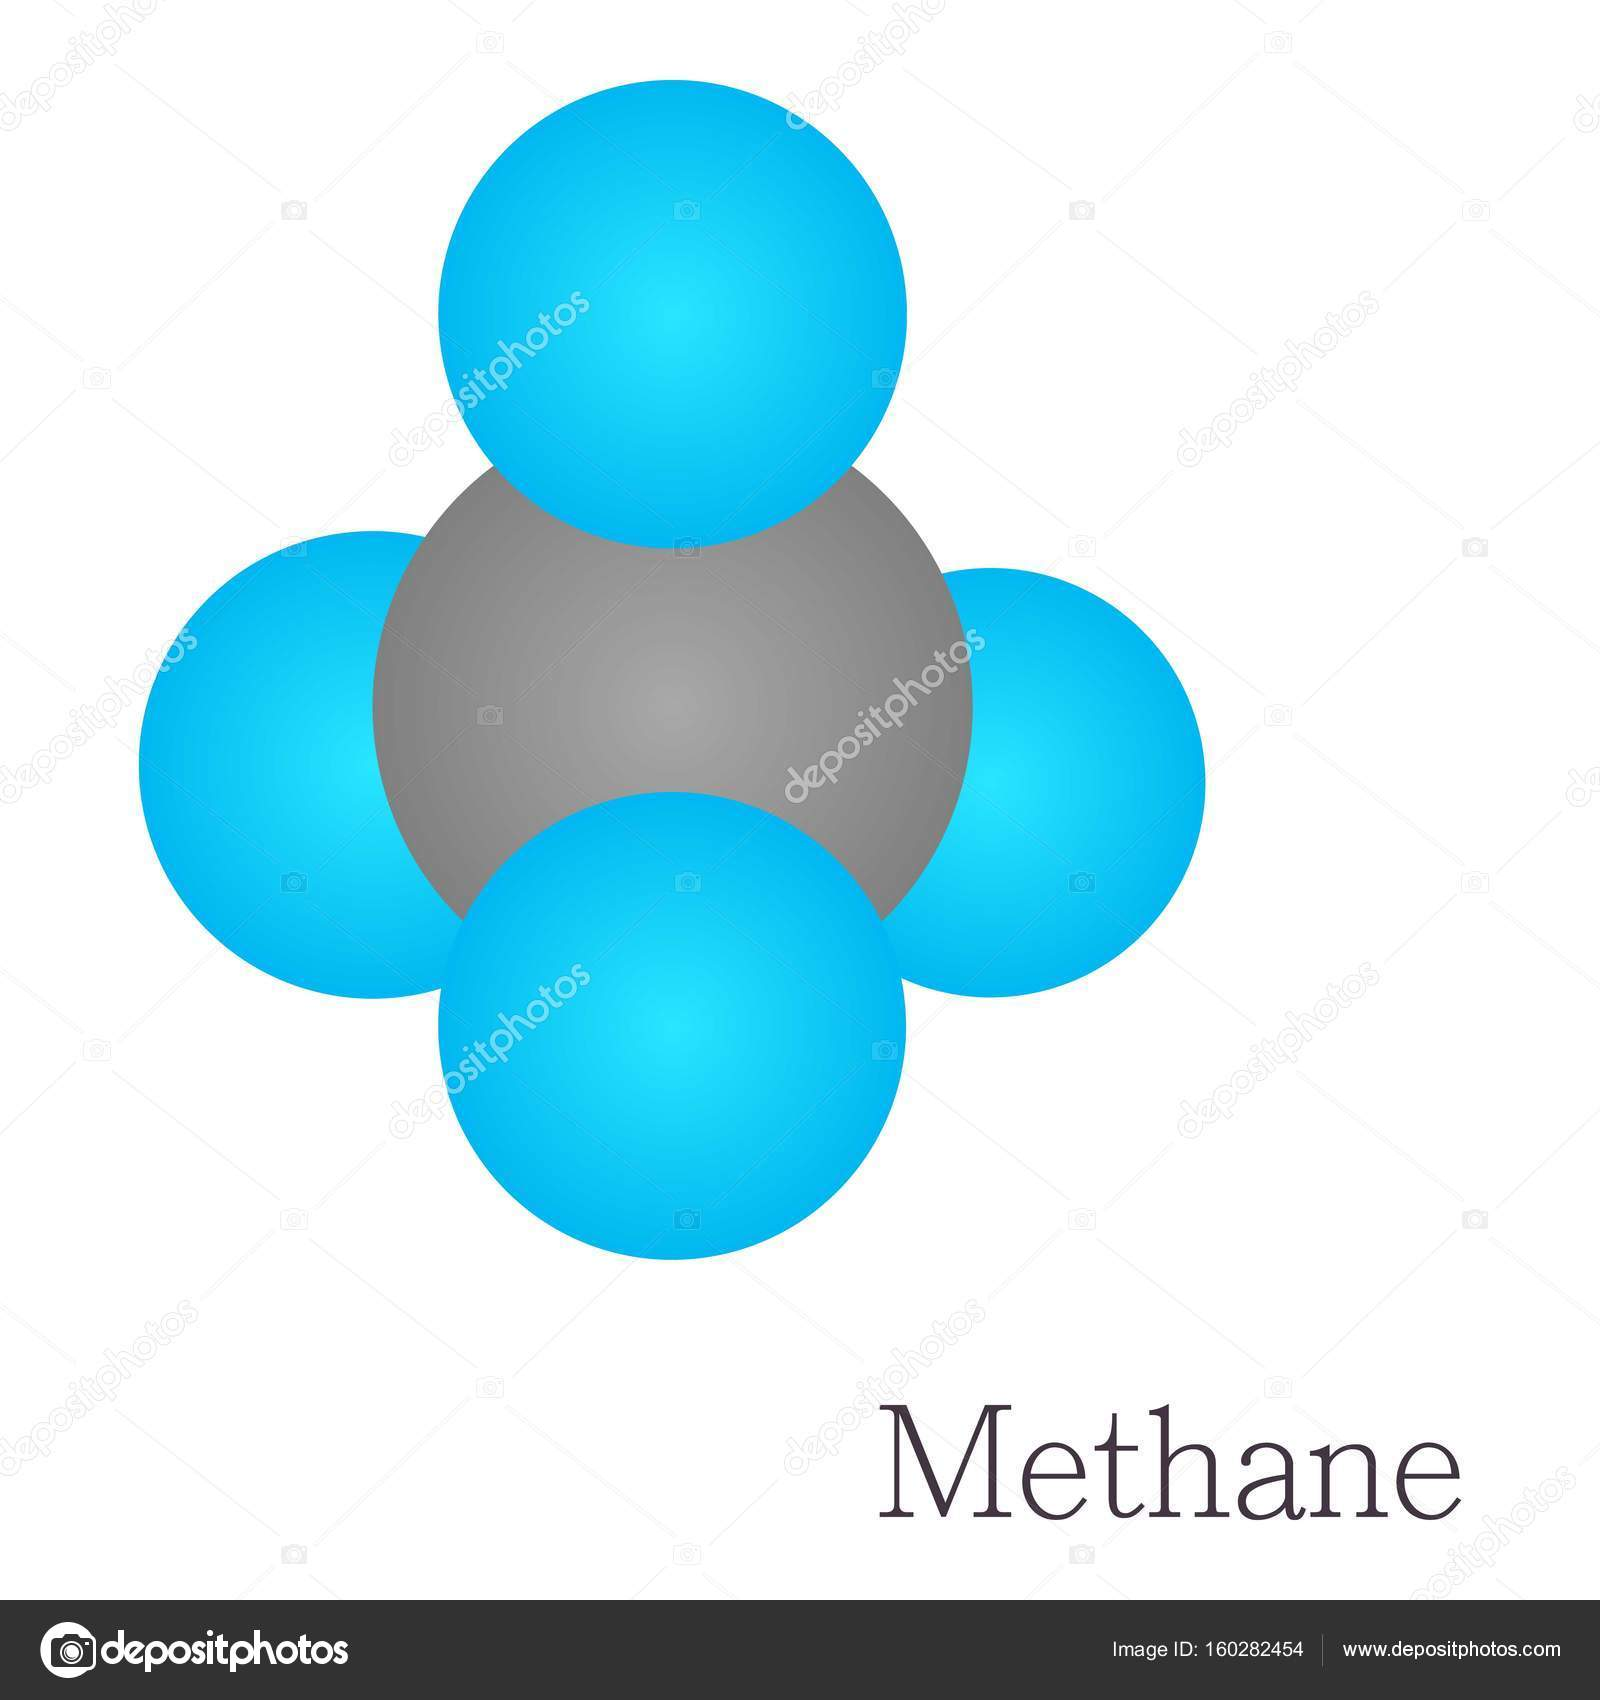 Methane 3d molecule chemical science stock vector ylivdesign methane 3d molecule chemical science stock vector biocorpaavc Gallery